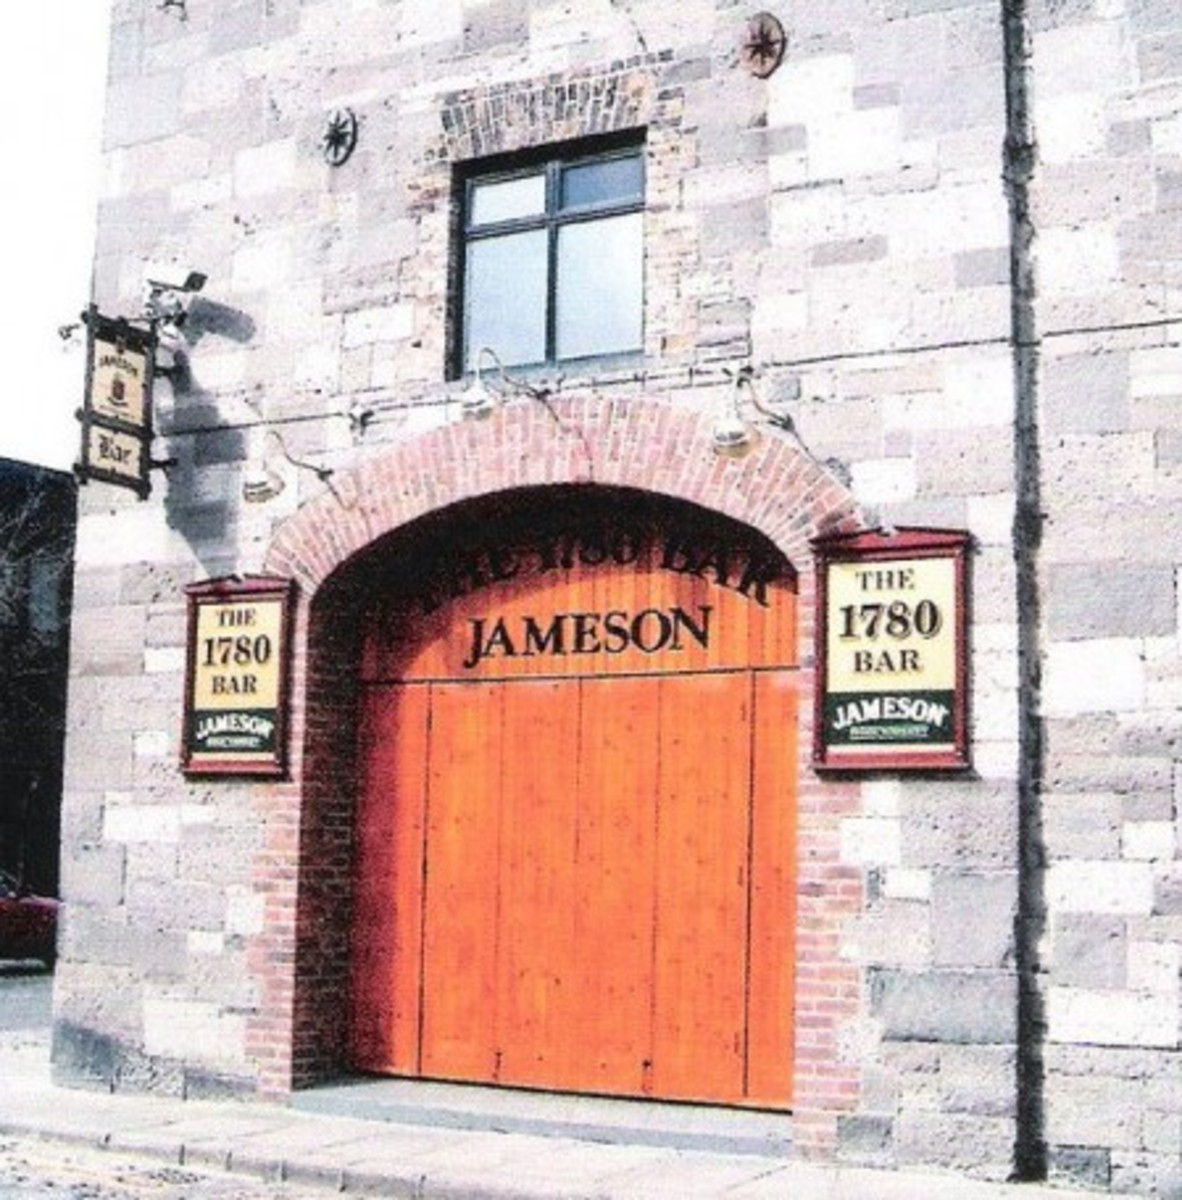 The Jameson Museum in Dublin Ireland is Worth a Visit